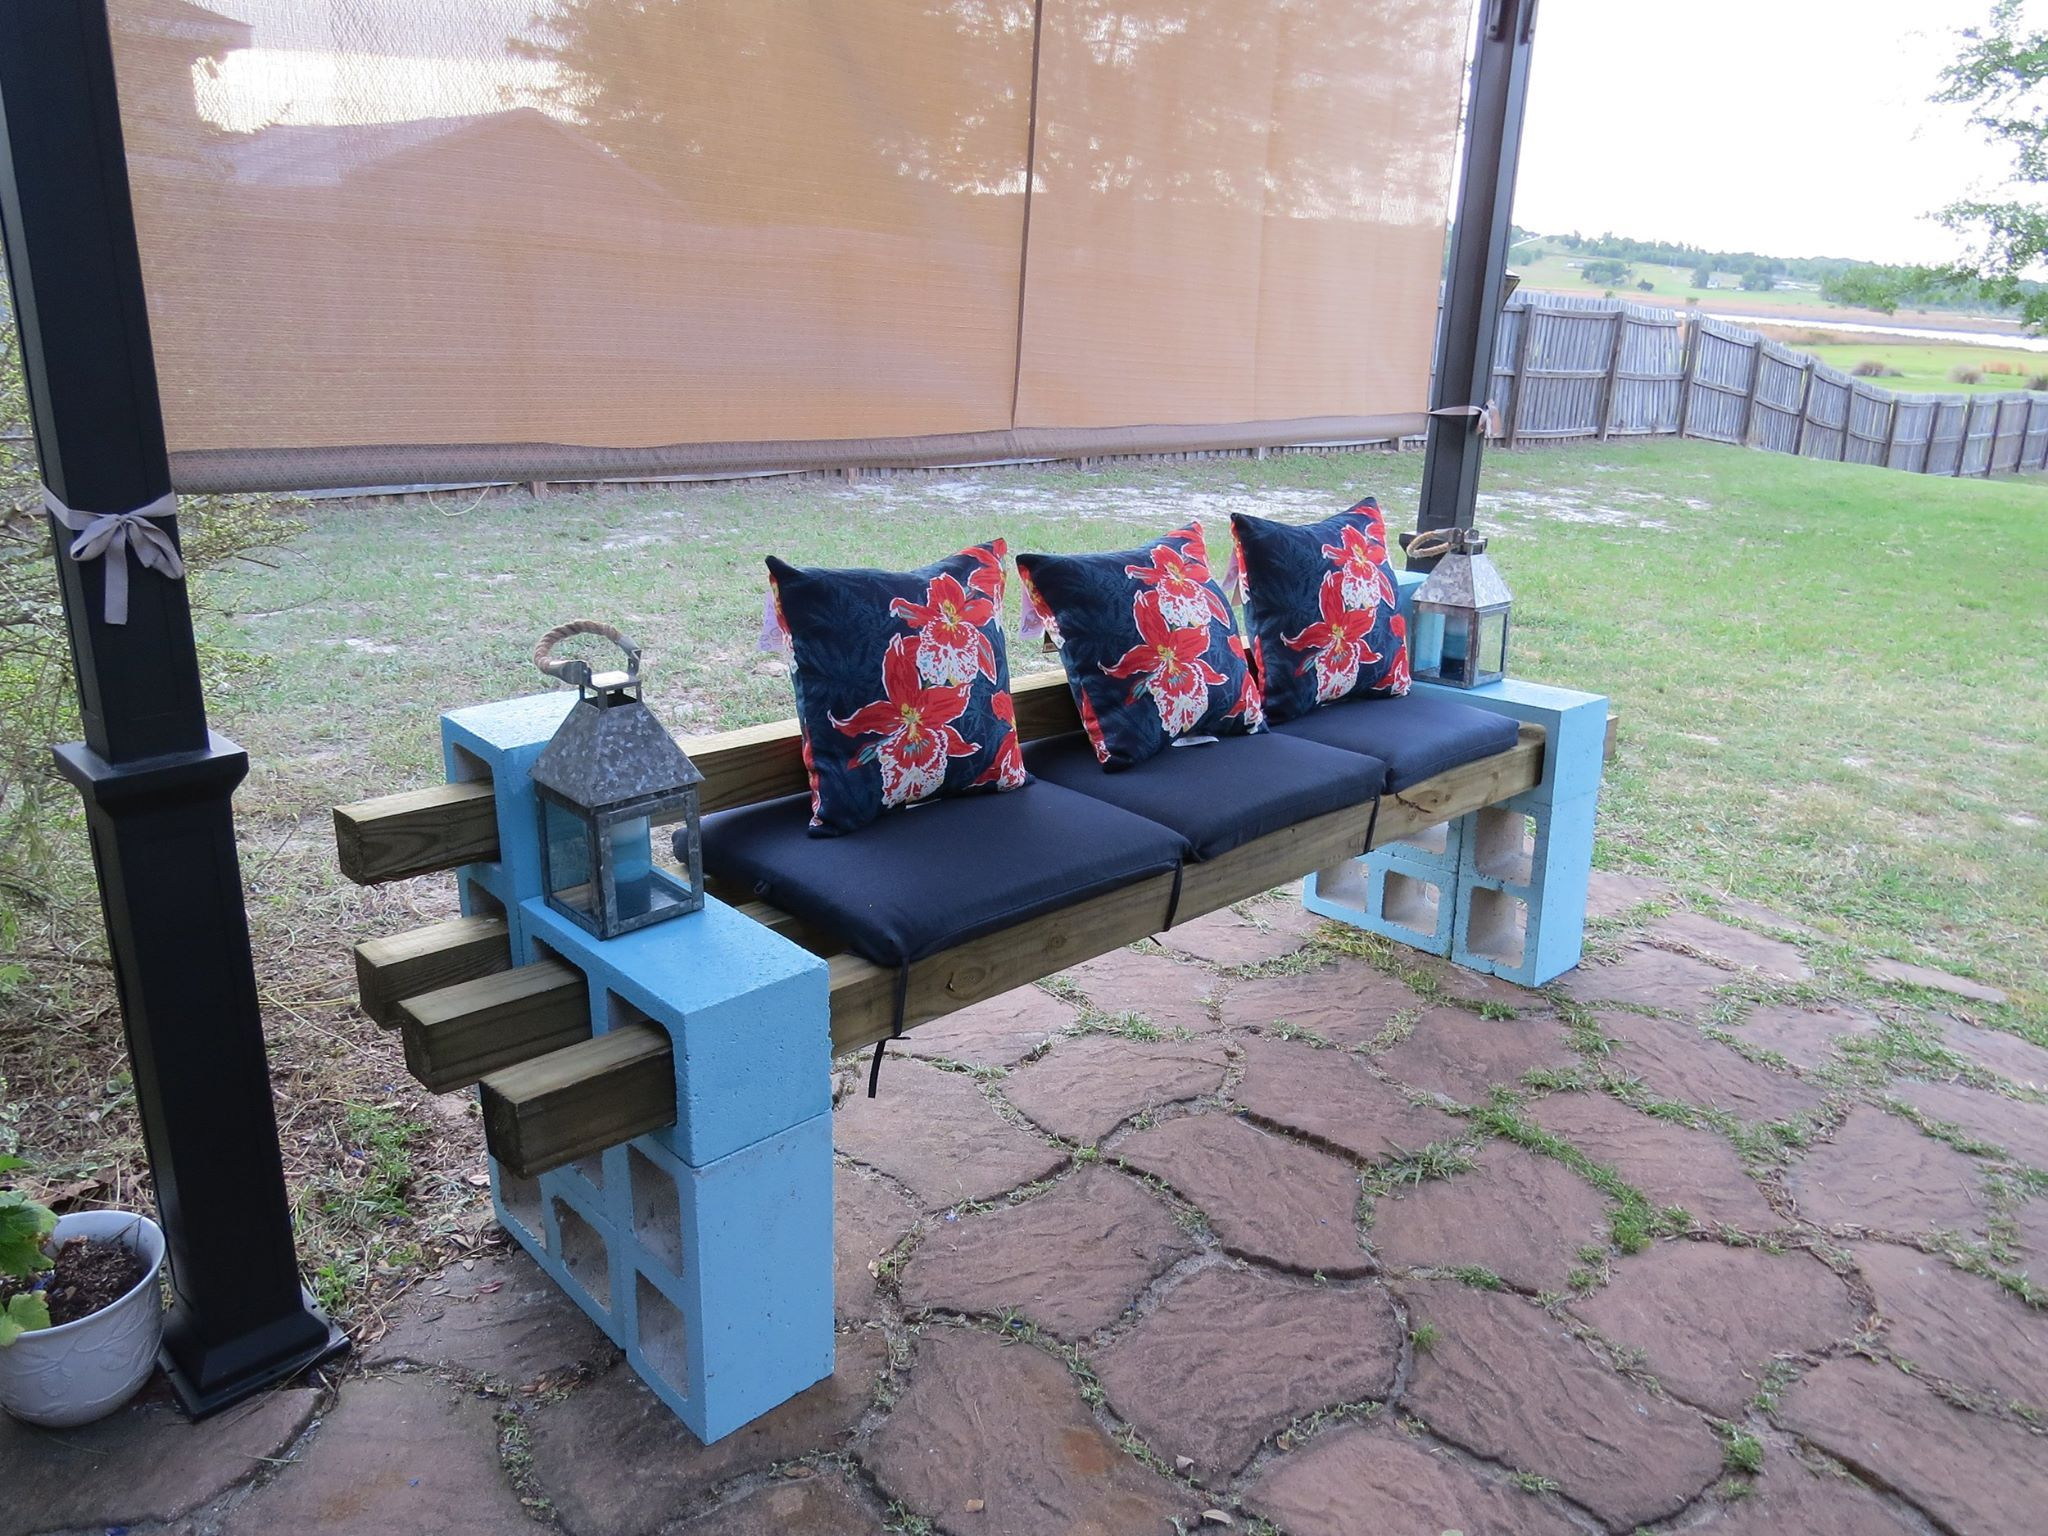 Diy patio furniture cinder blocks - Diy Patio Bench Using Concrete Cinder Blocks 4x4 Wood And Cushions